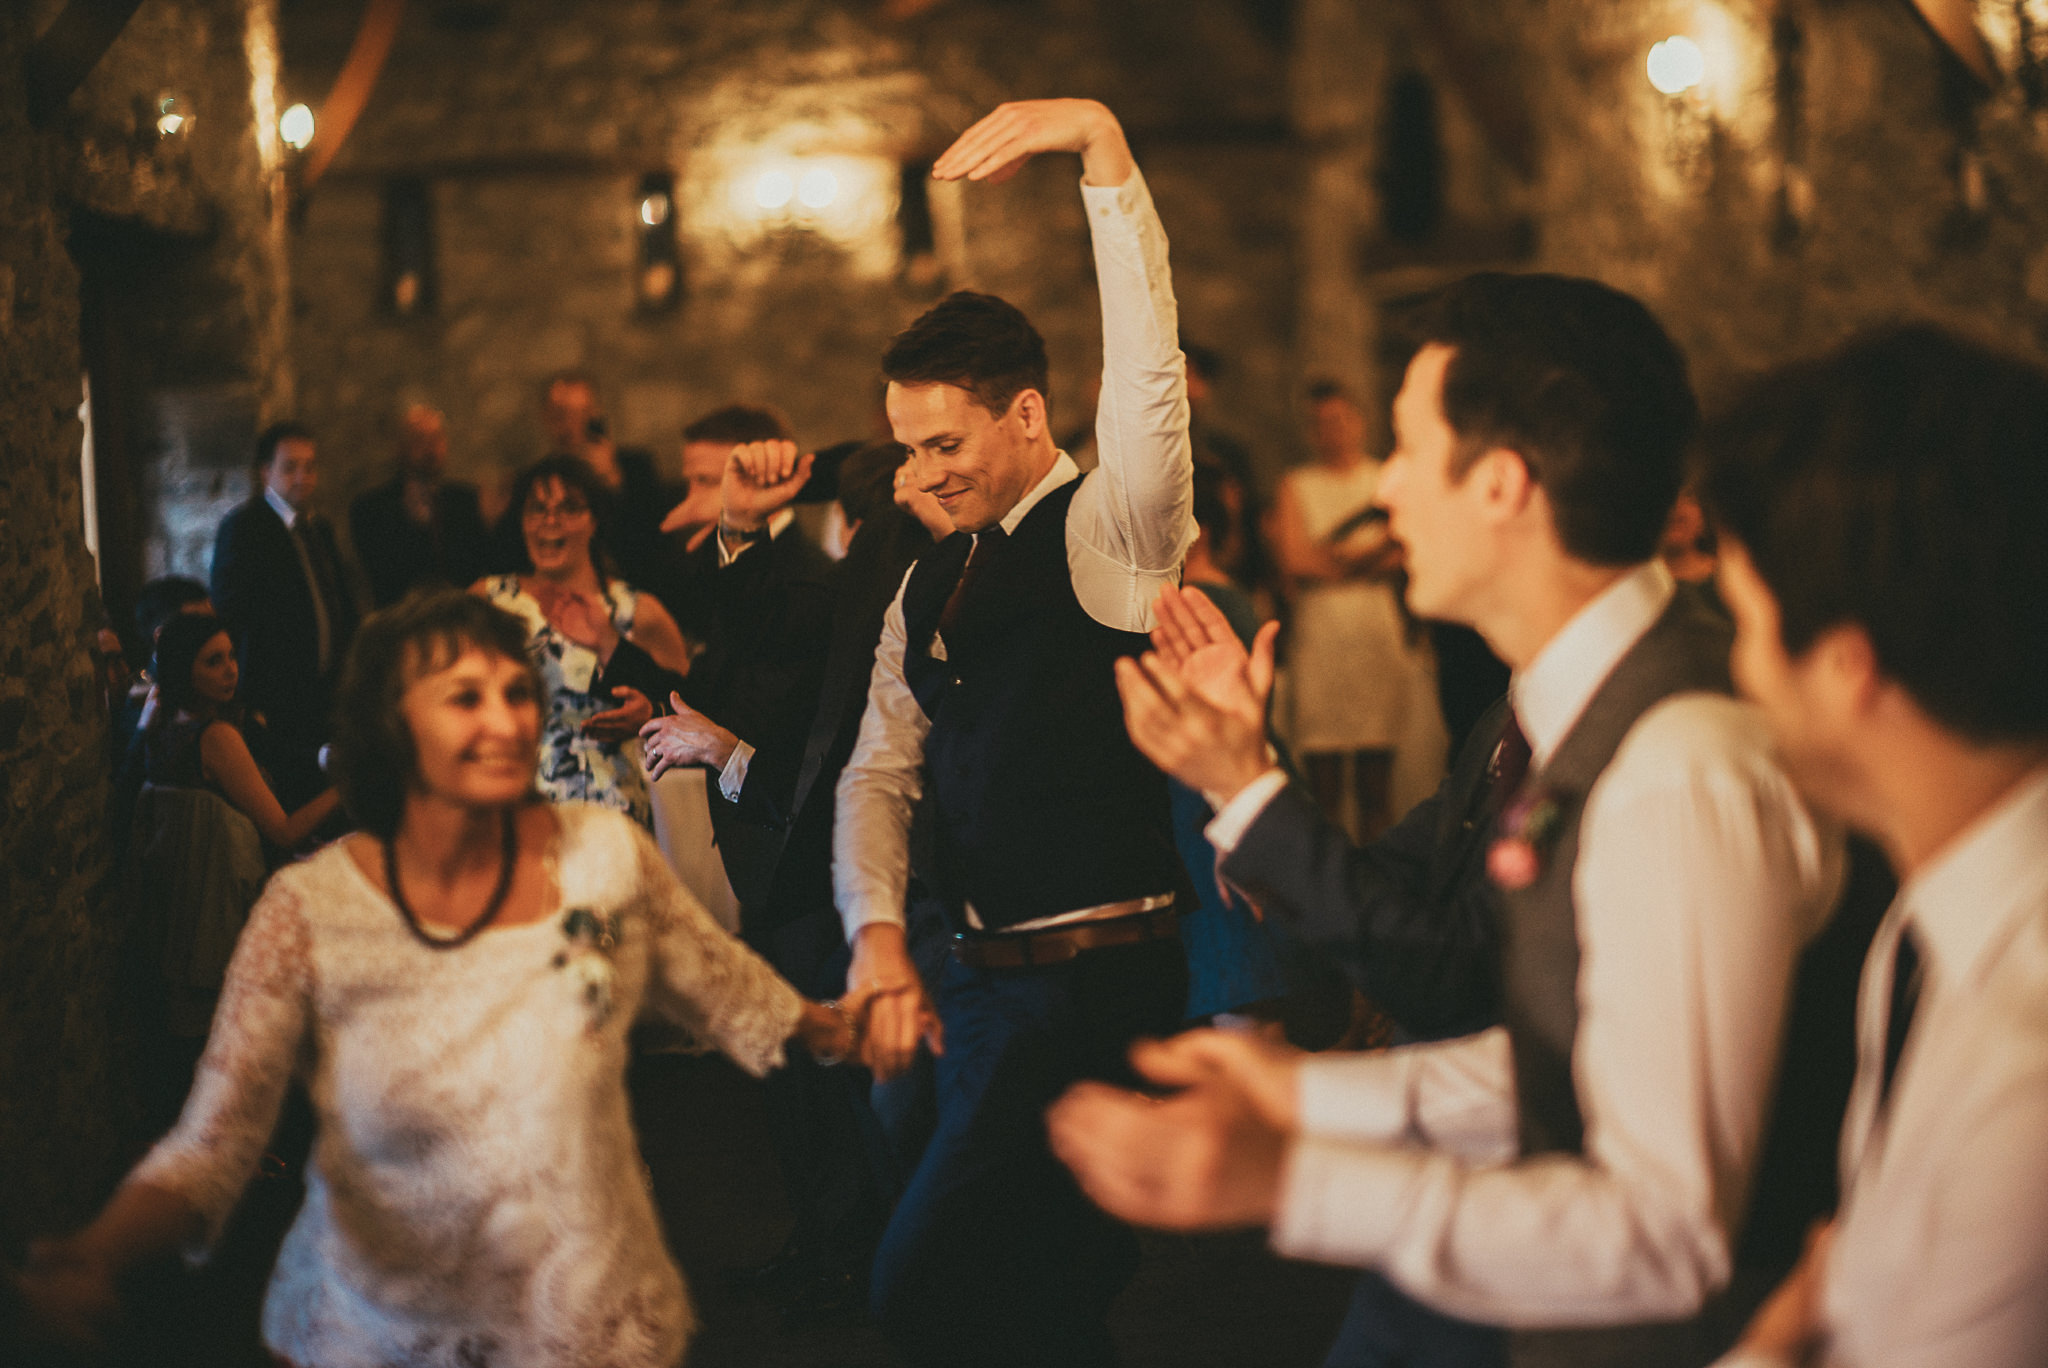 plas-isaf-corwen-north wales wedding-photography-photographer-91090